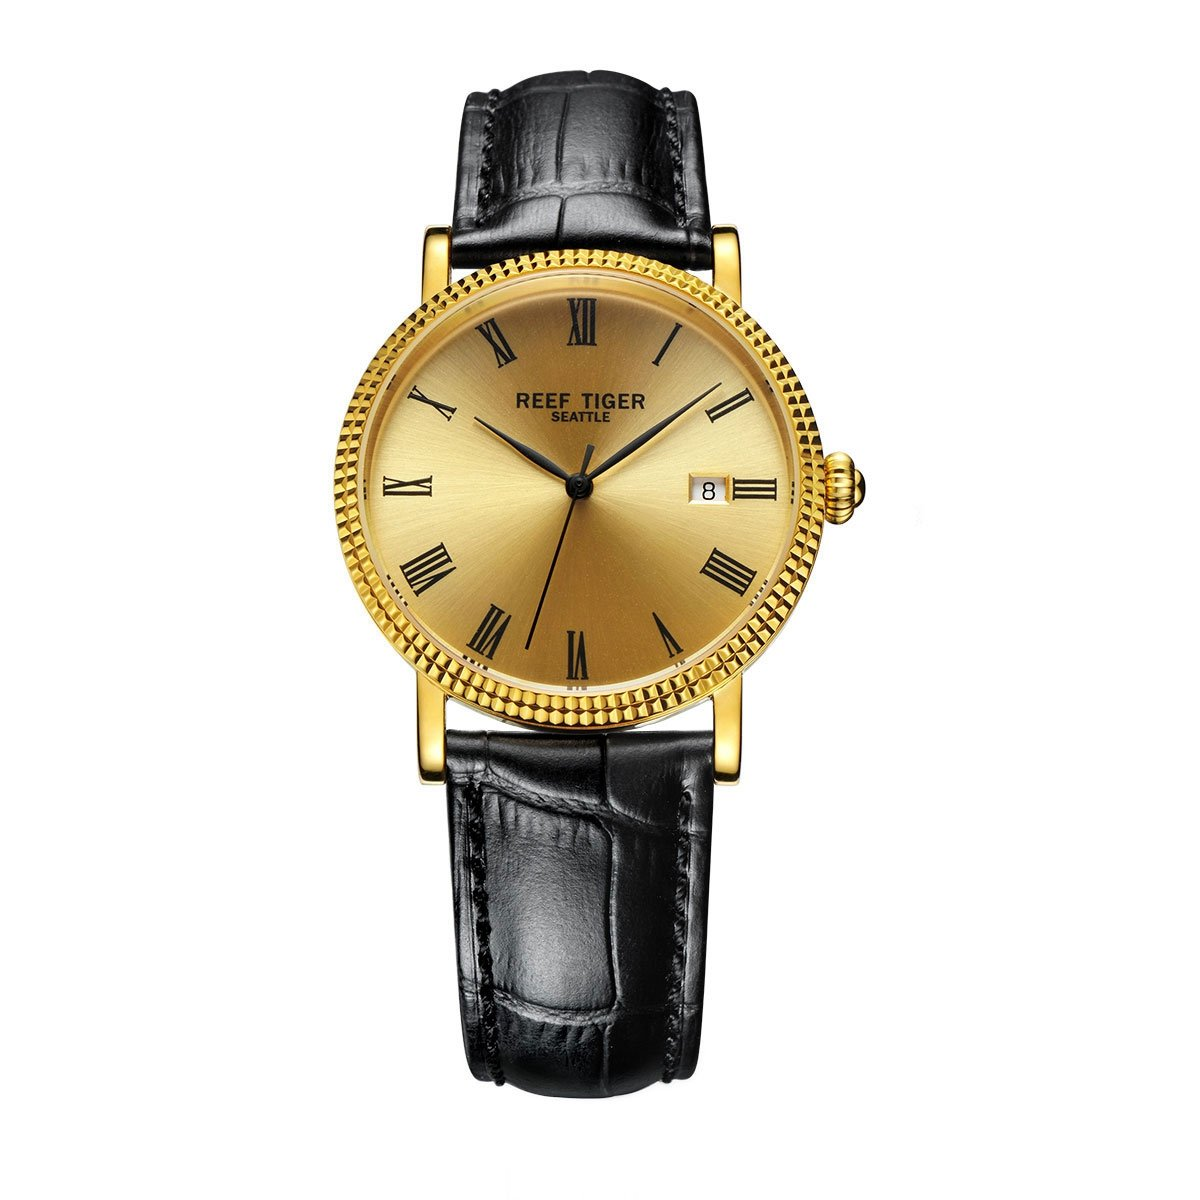 Reef Tiger Designer Dress Watches for Men Yellow Gold Case Leather Strap Date Automatic Watch RGA163